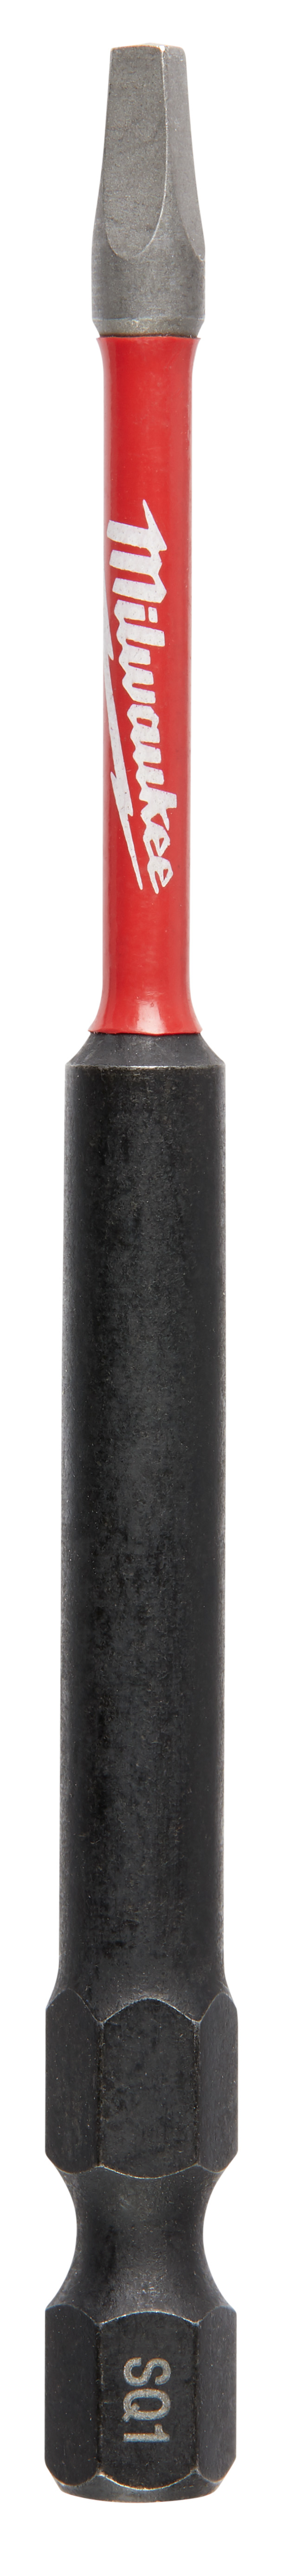 Milwaukee® 48-32-4794 SHOCKWAVE™ Impact Duty™ Impact Power Bit, #1 Square Recessed Point, 3-1/2 in OAL, 1/4 in, Steel